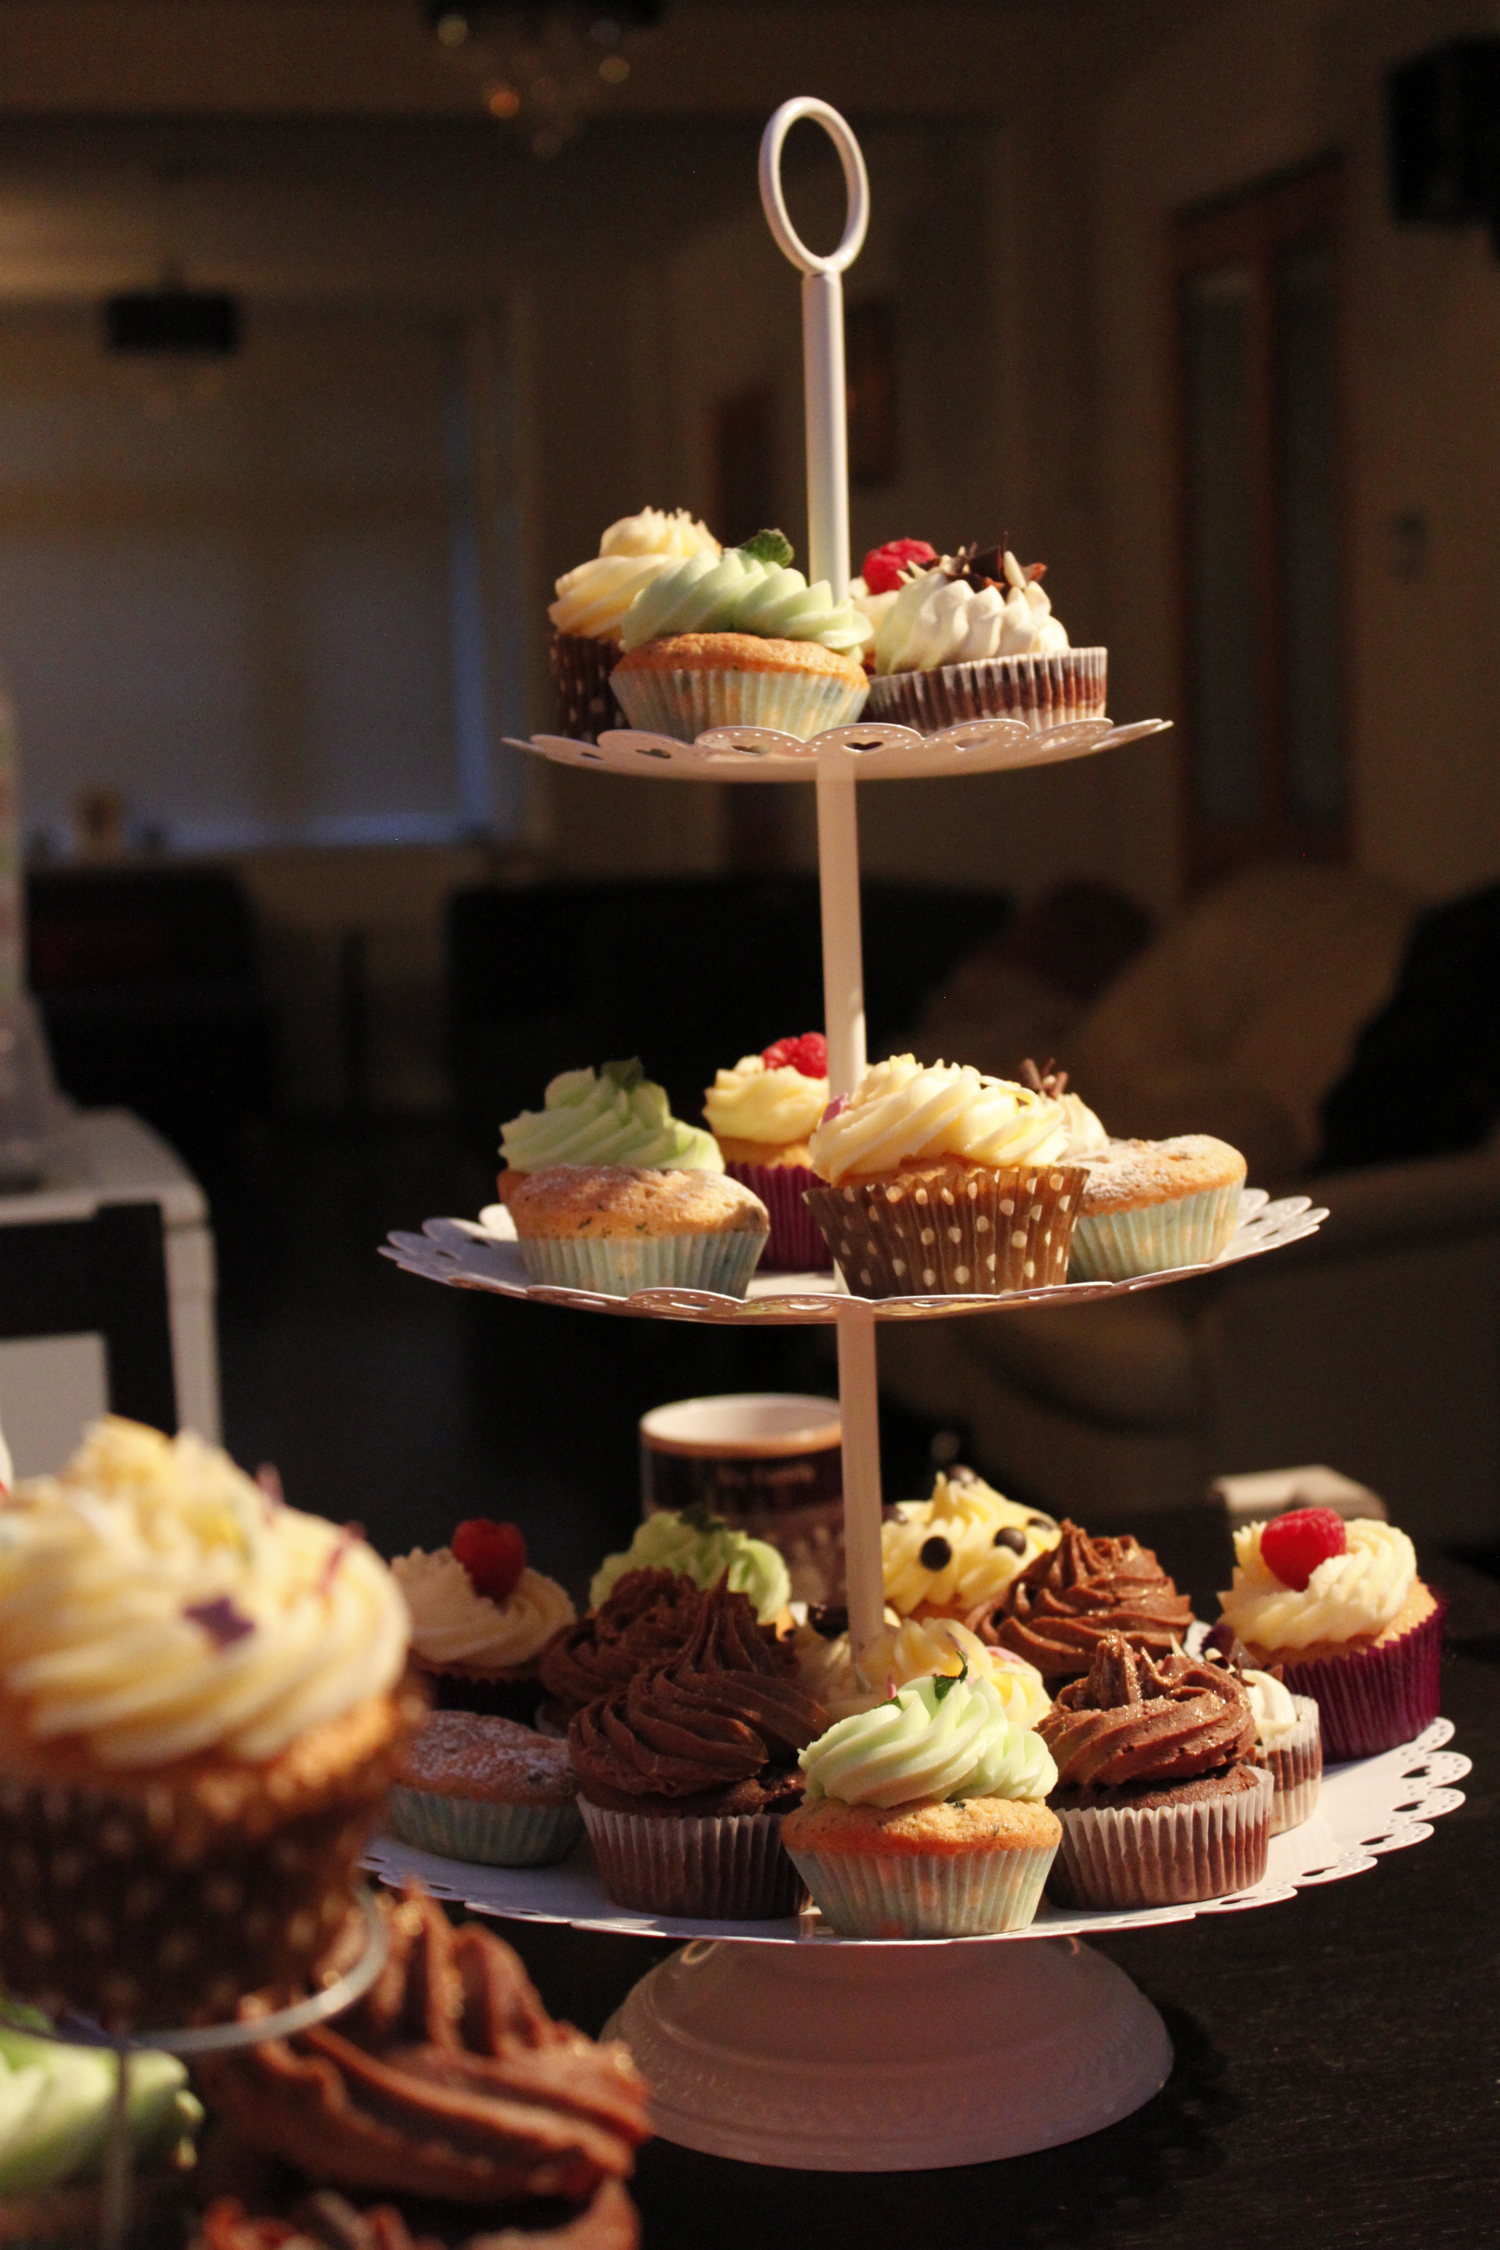 cakes-on-a-stand_8604961790_o